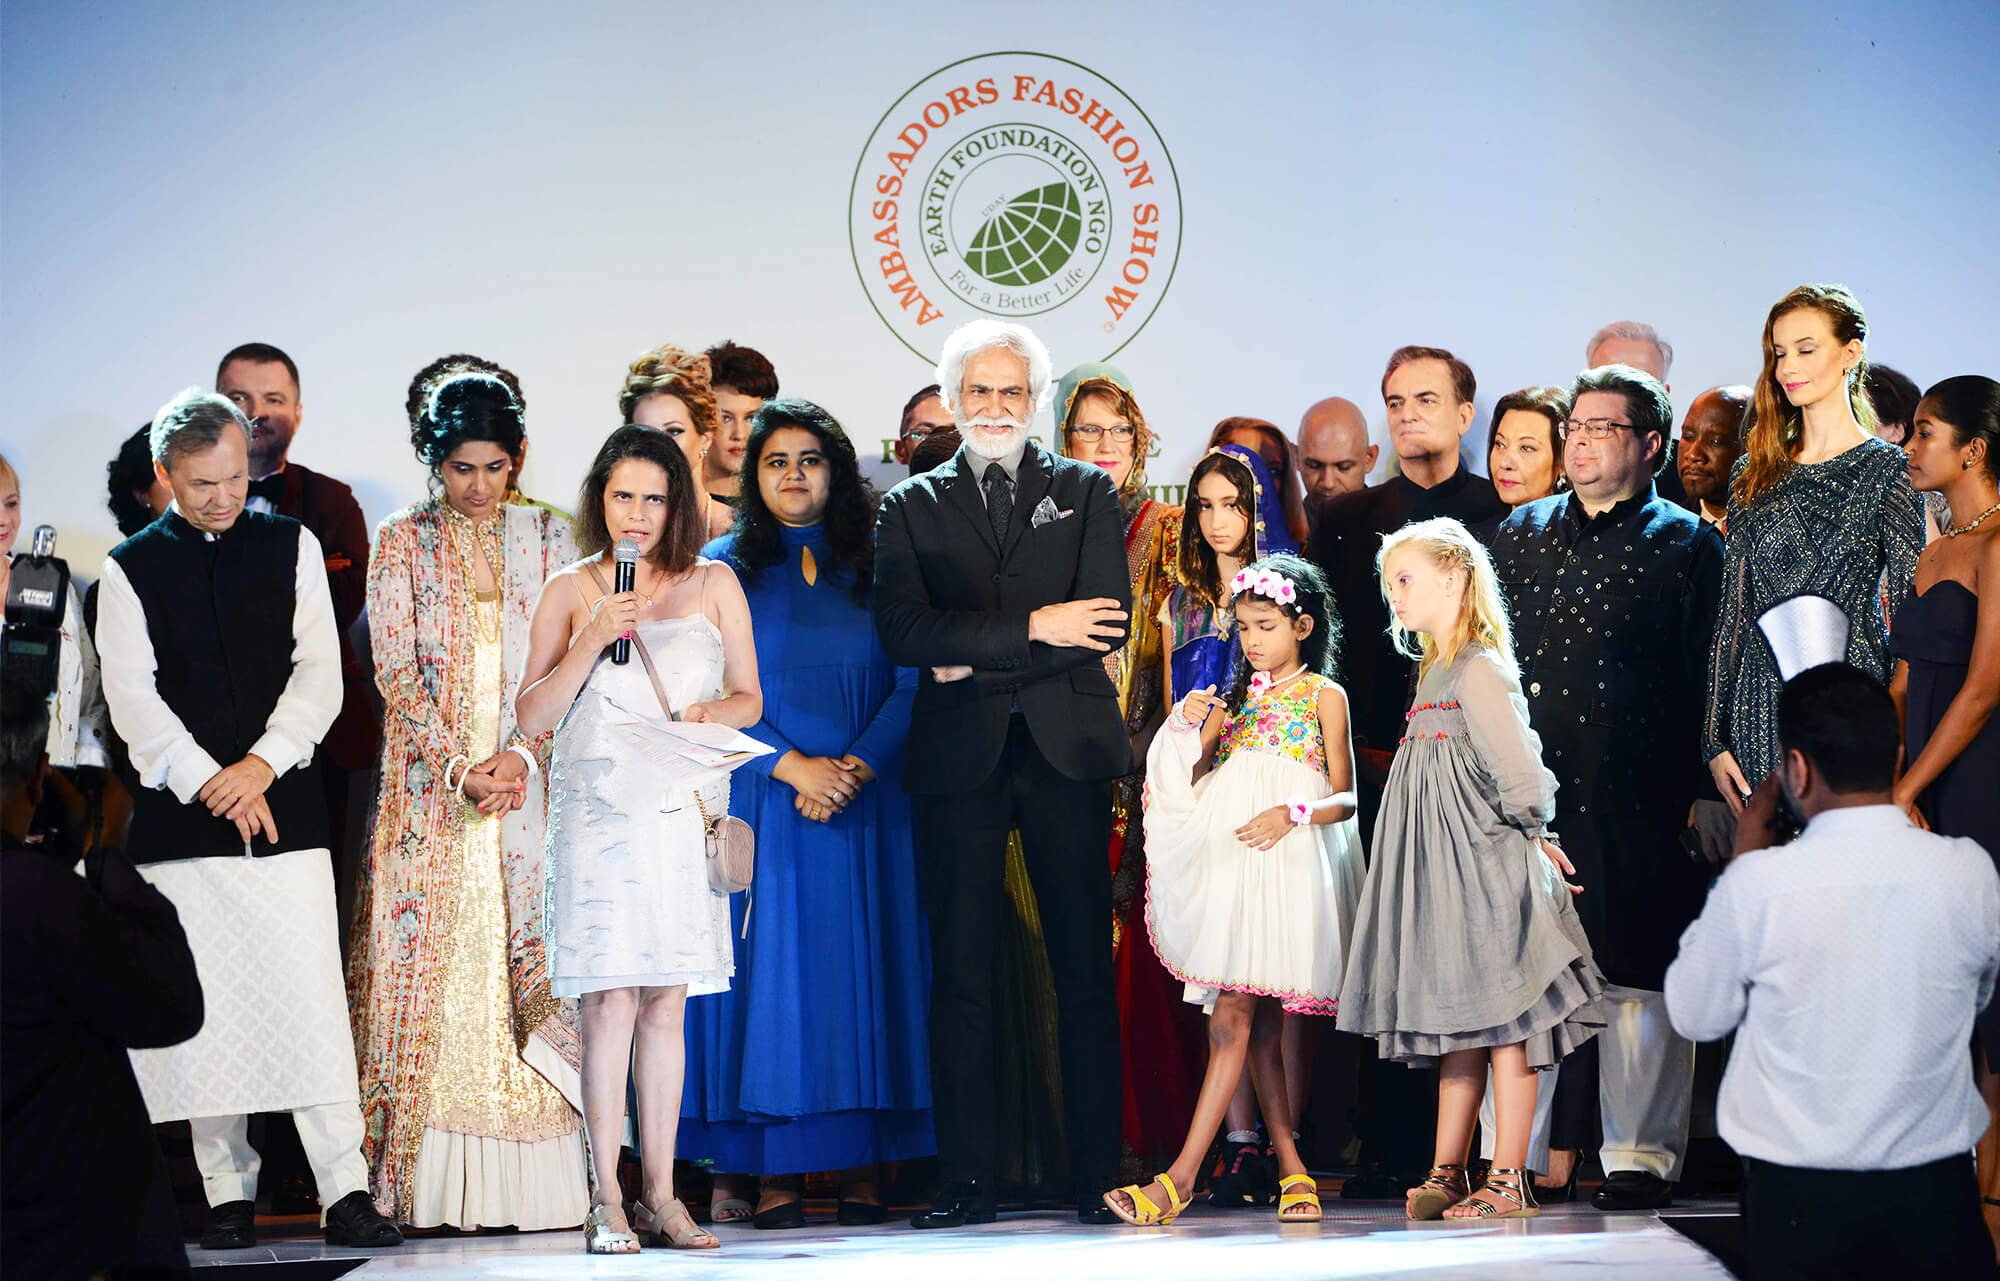 President of Earth Foundation Geeti Bhagat gives vote of thanks on stage with Mr. Sunil Sethi and Ambassadors _ designers